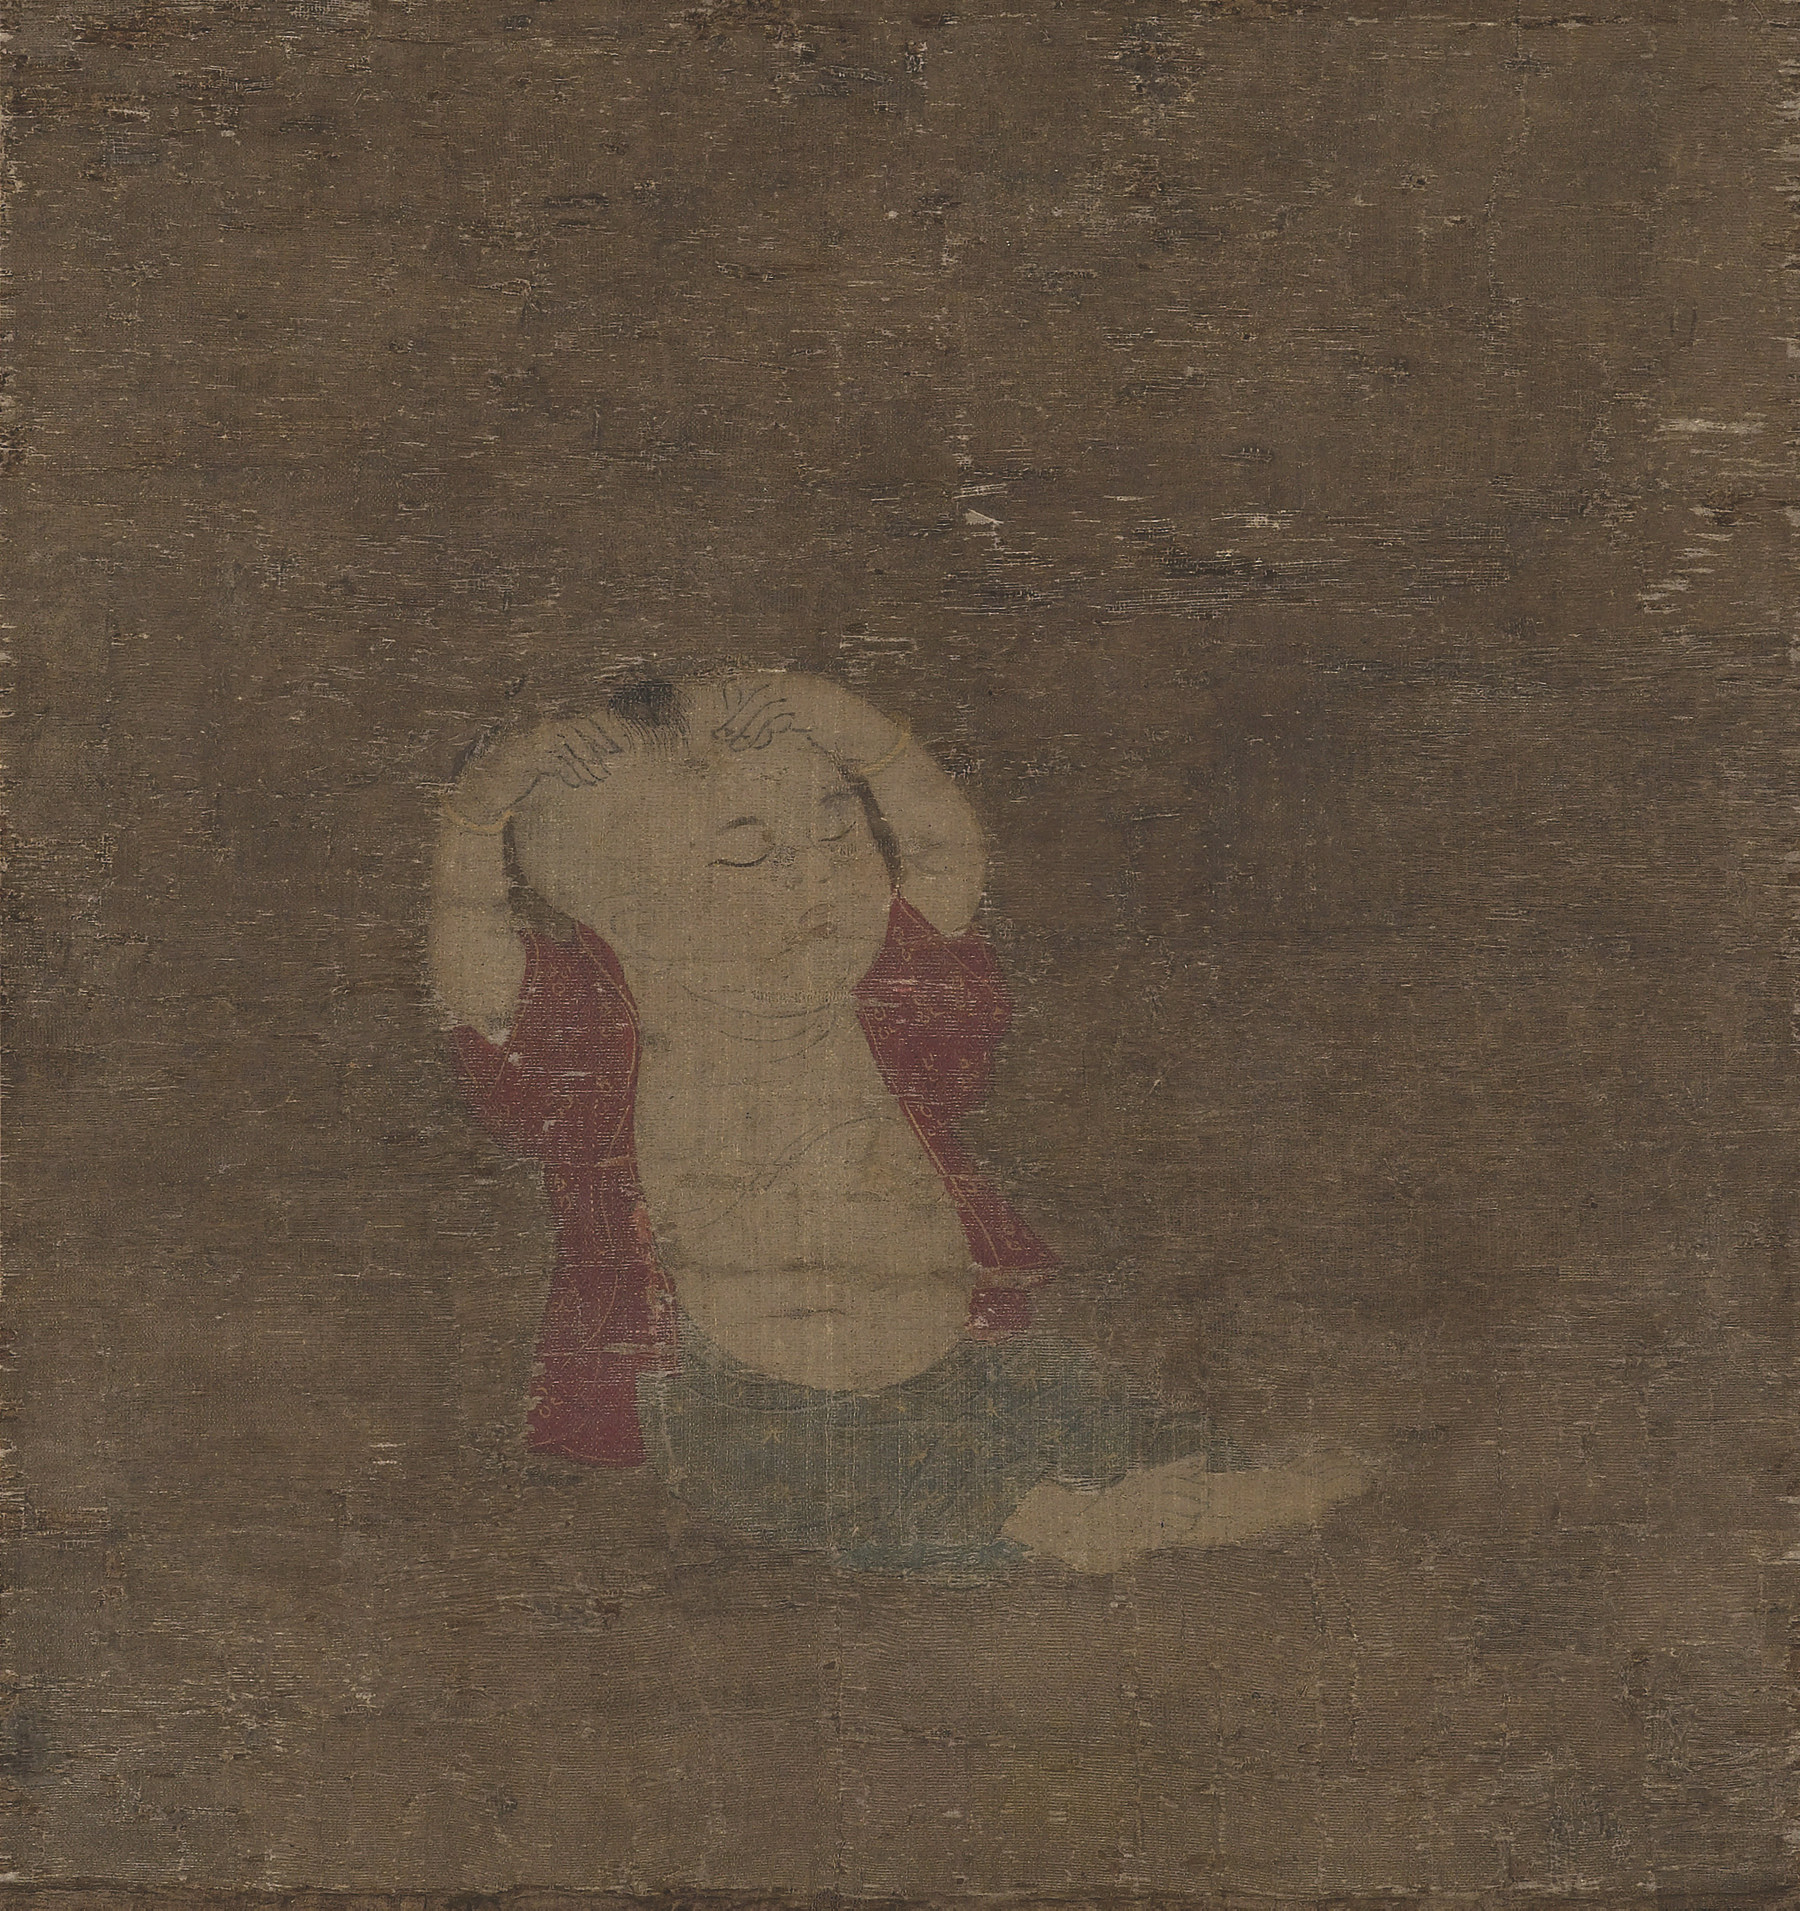 ANONYMOUS (15TH-17TH CENTURY)